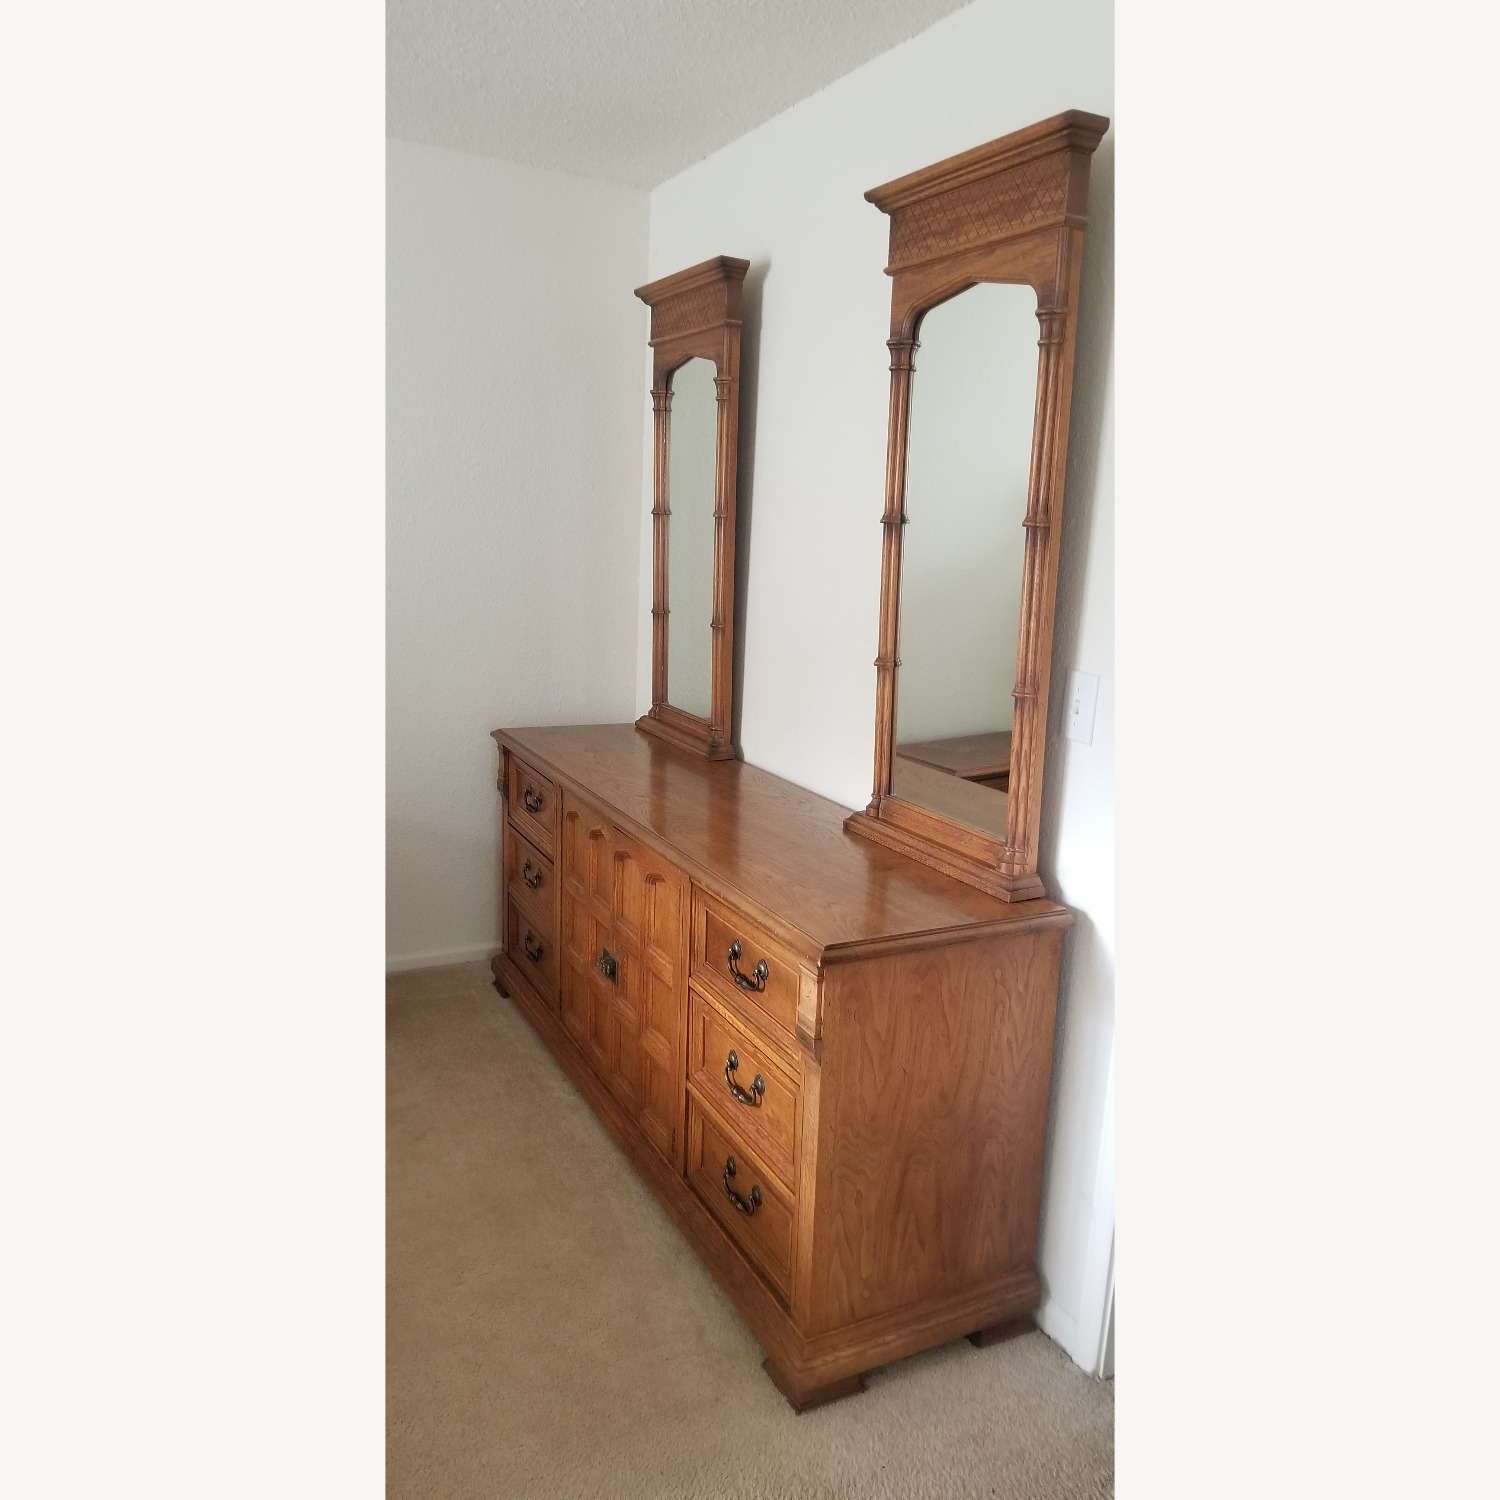 Vintage Drexel Dresser with two Large Mirrors - image-1